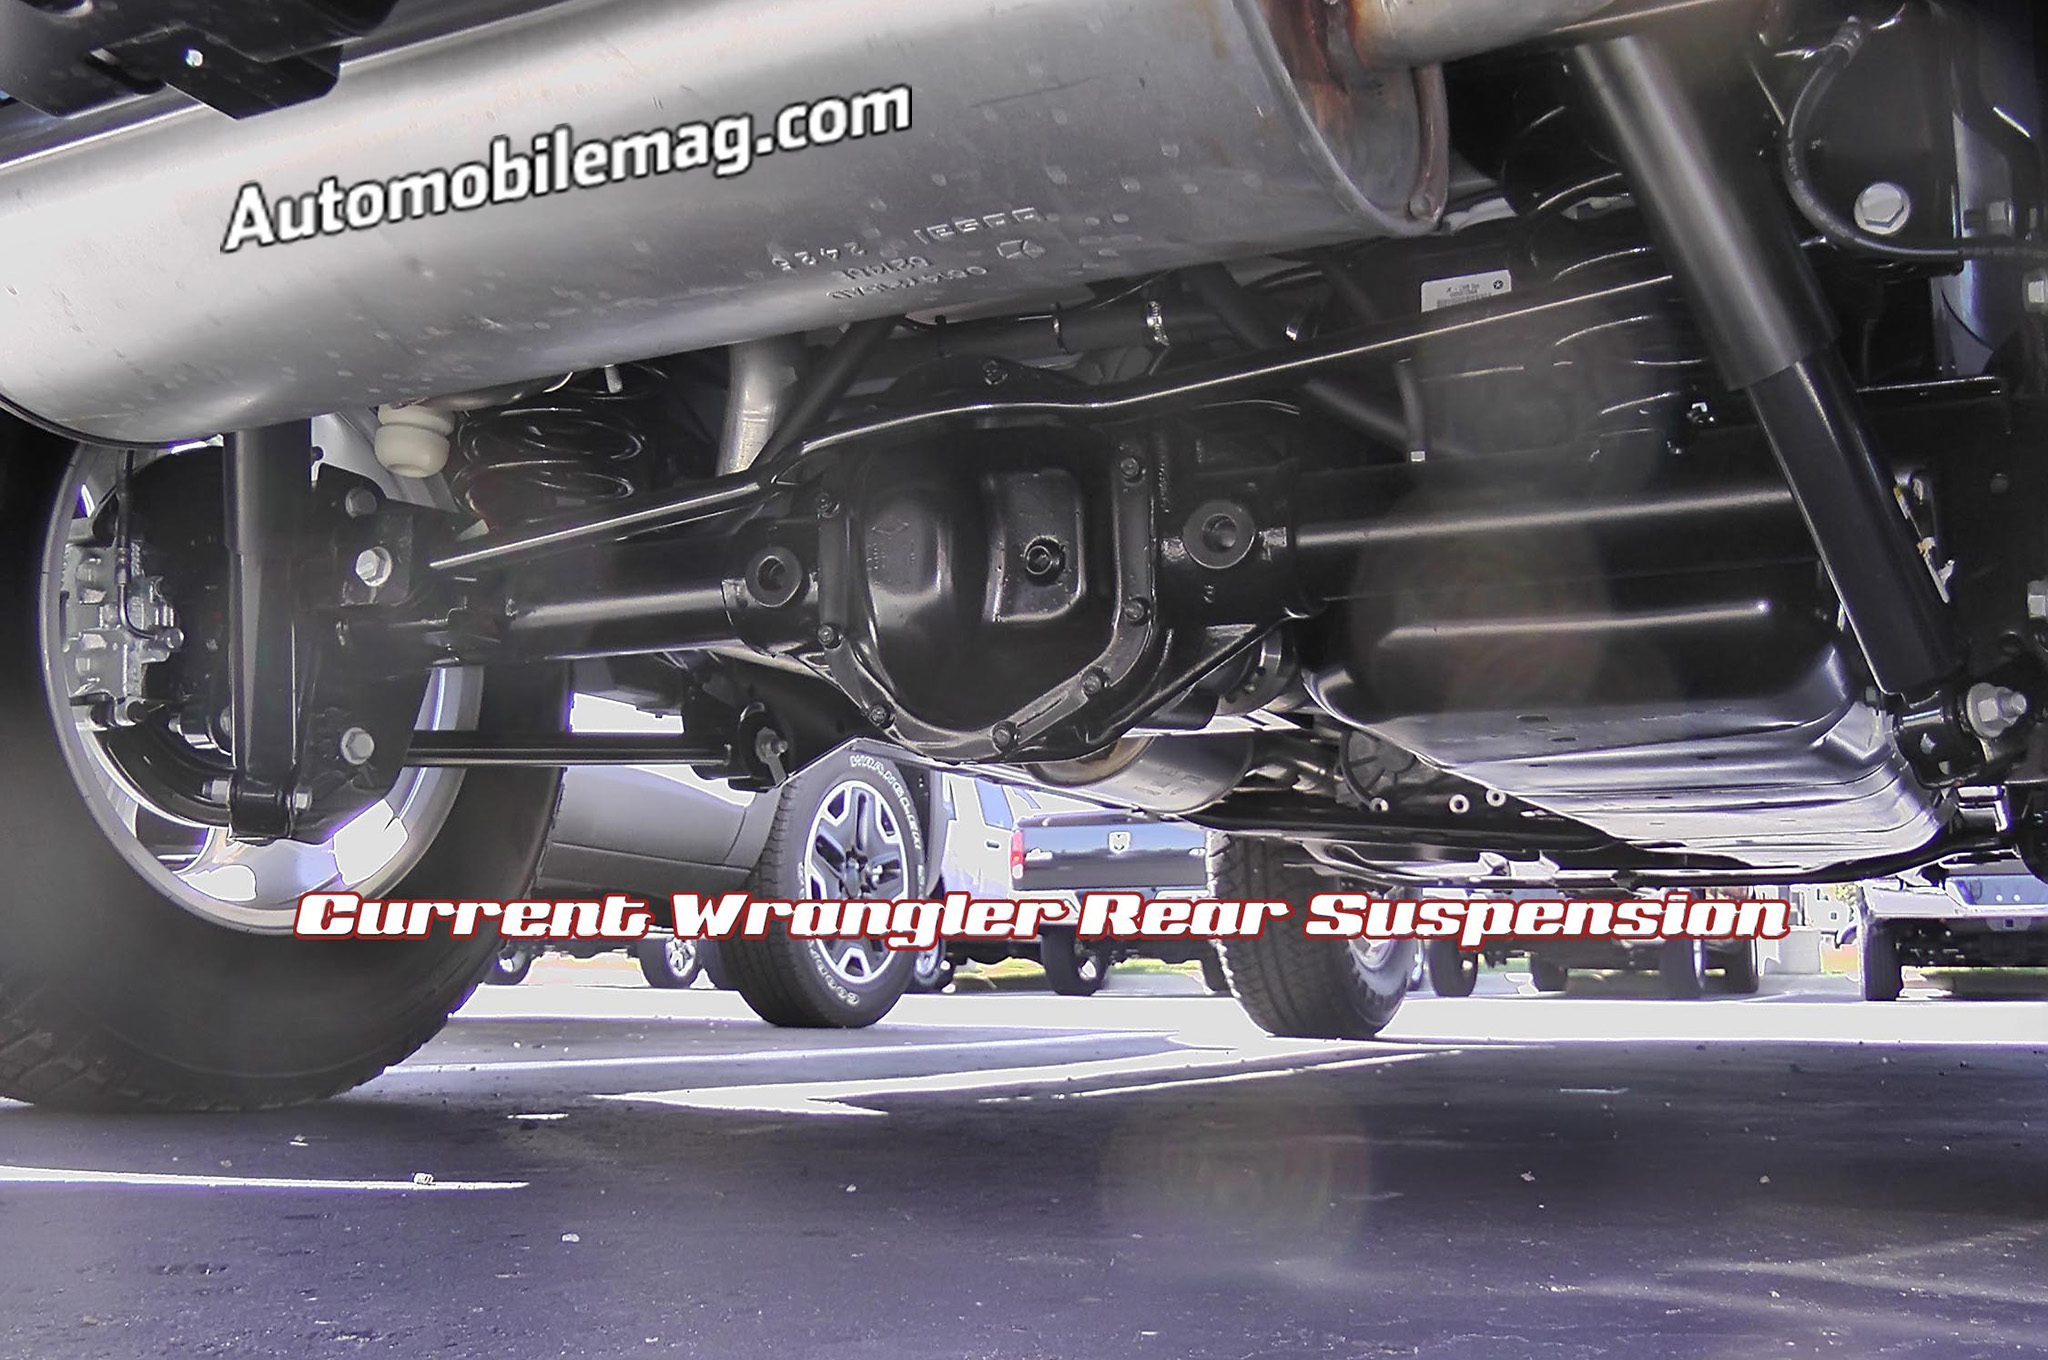 Jeep Jk Wrangler Suspension Diagram Wiring Schematic Data Jeeptjsuspensiondiagram Basic Doityourself Front 2018 Prototype Spied With Body Modifications Brake Line